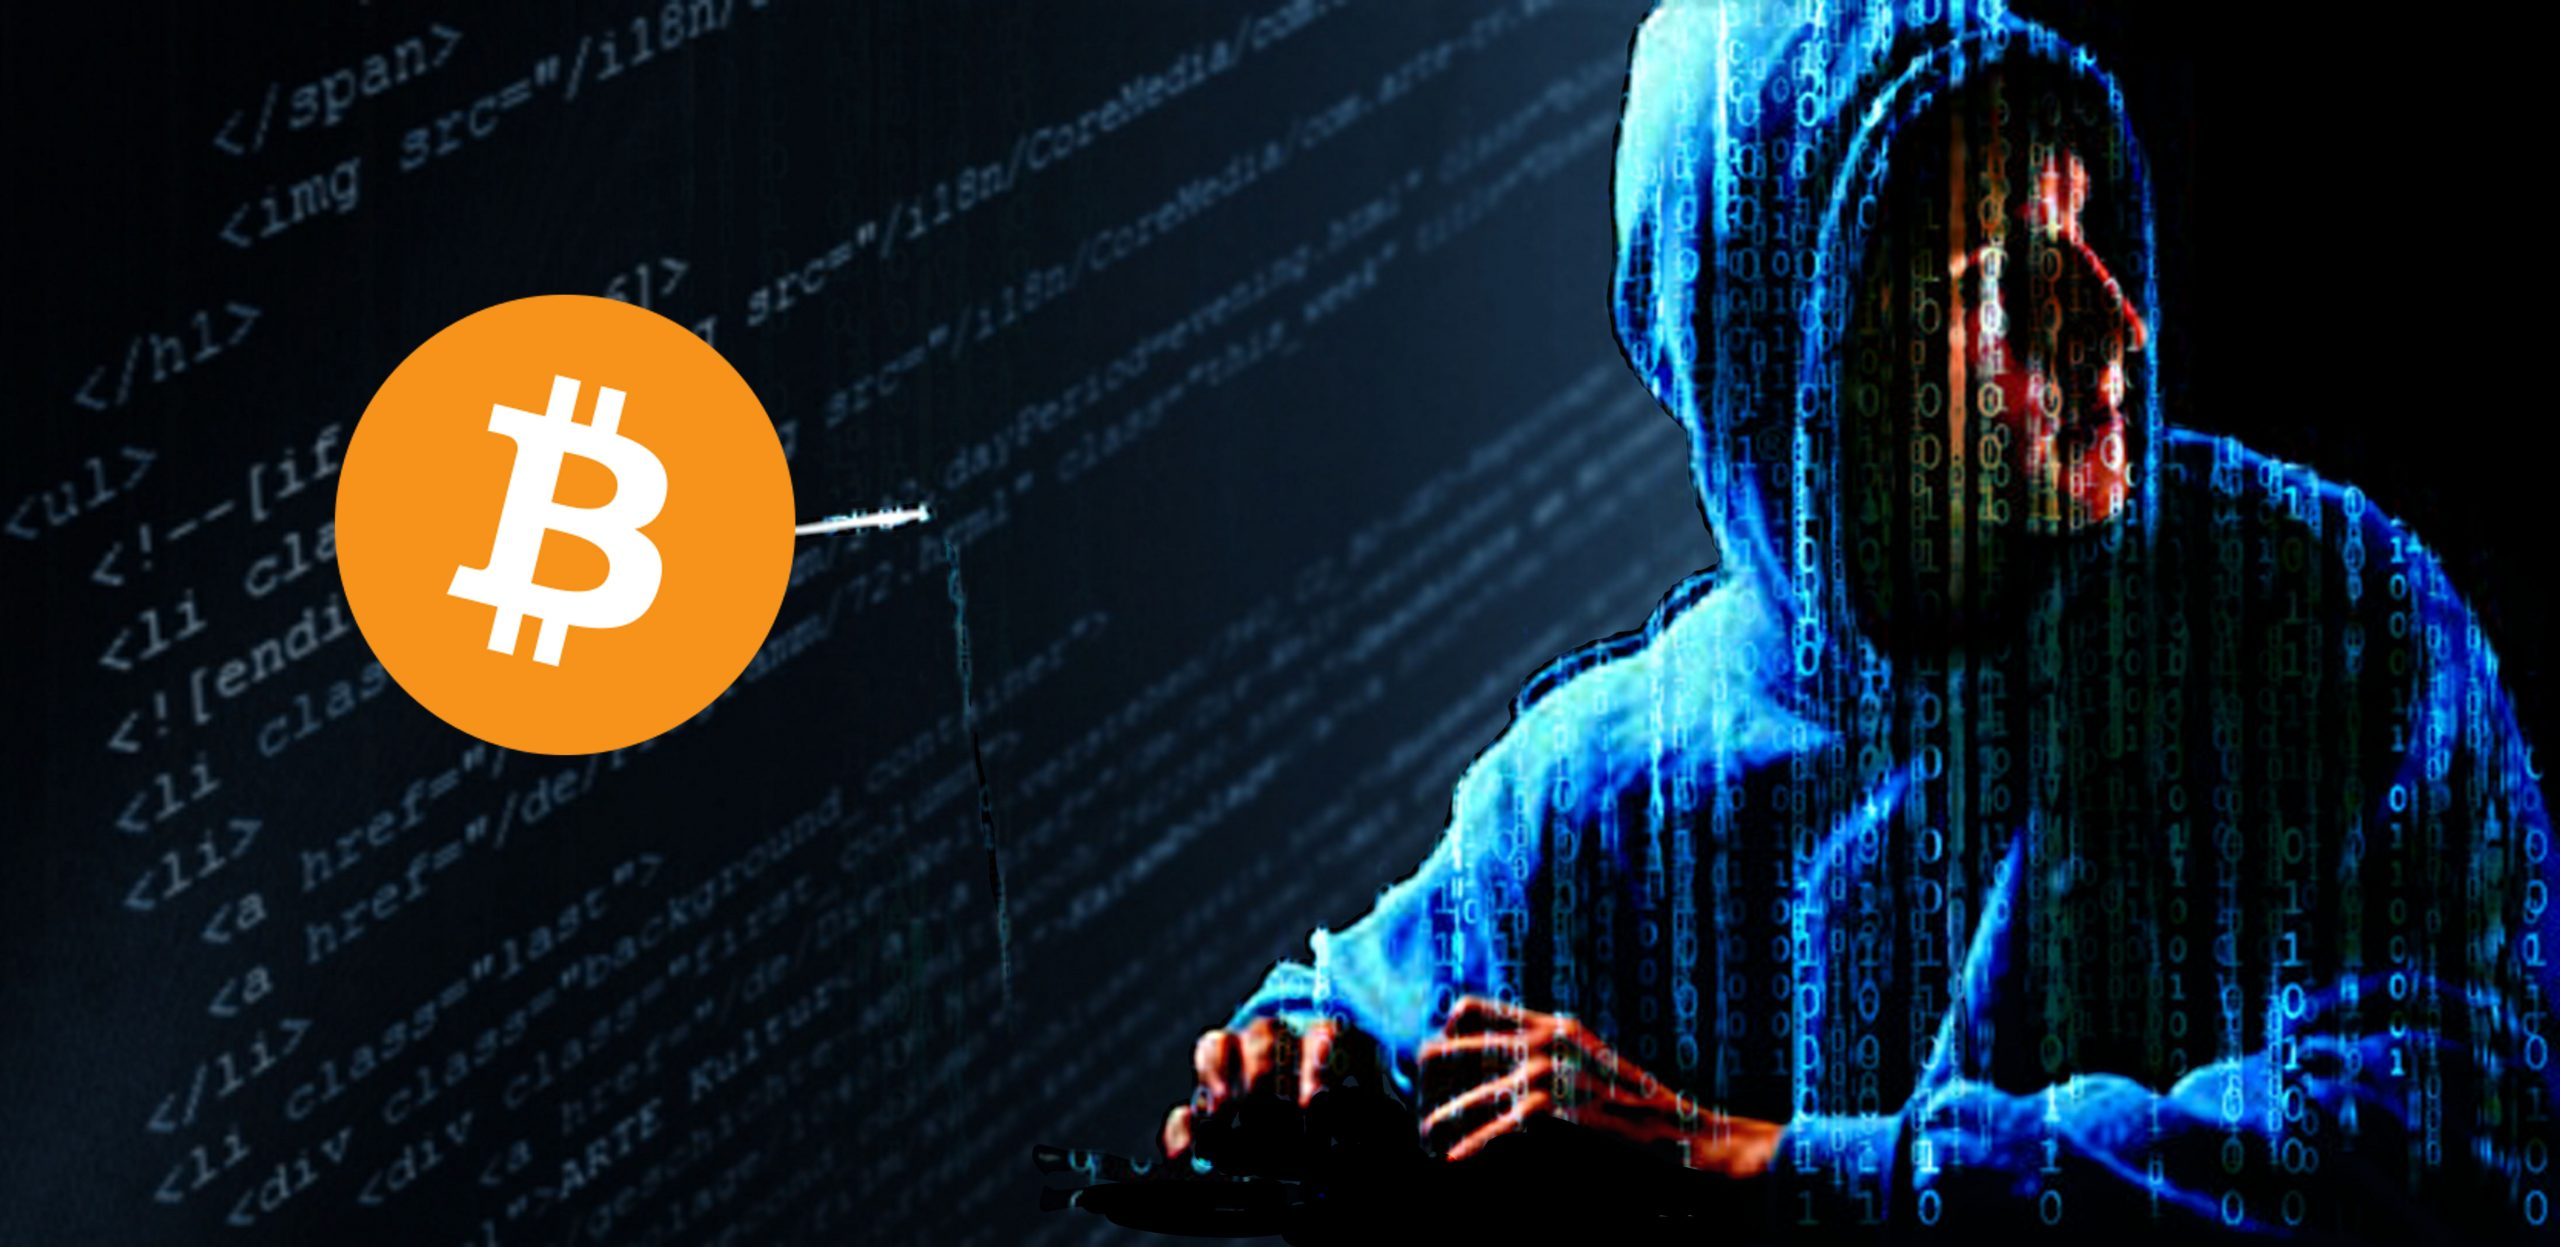 50 Satoshi-era Bitcoins, Worth $527,120, moved to the Hot Wallet of a Cryptocurrency Exchange.